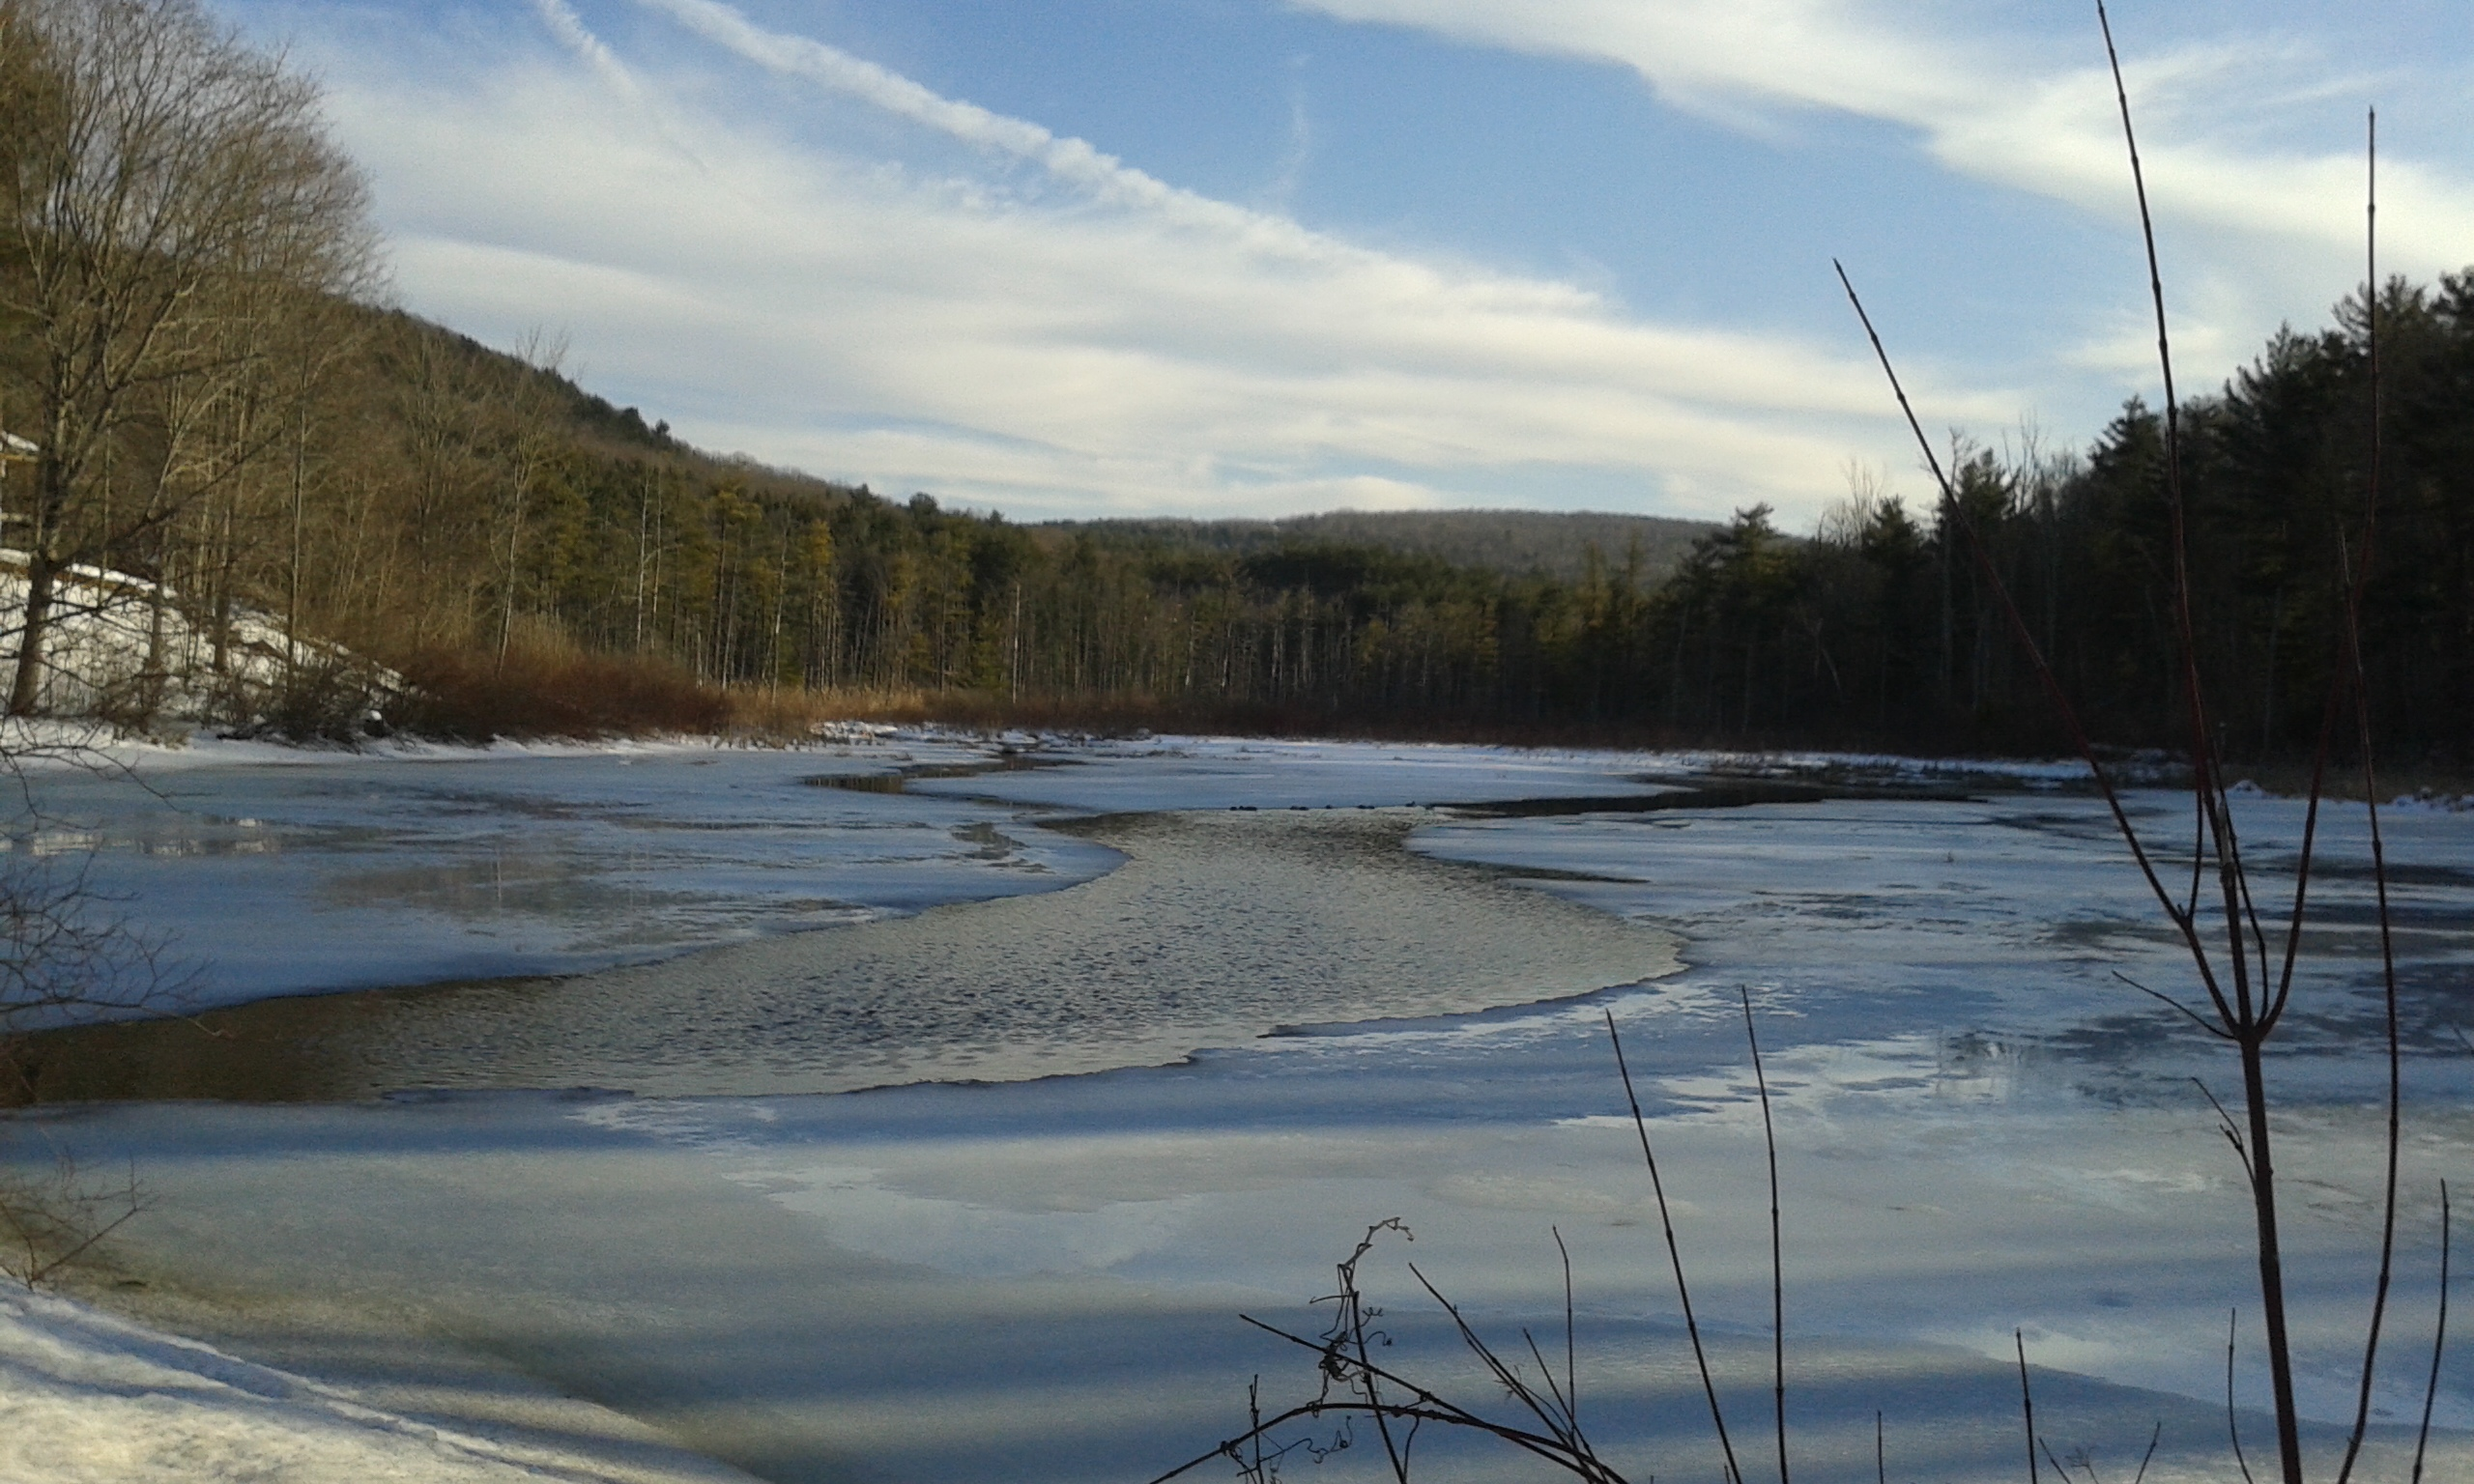 Partially open water with ice surround and hills in the distance